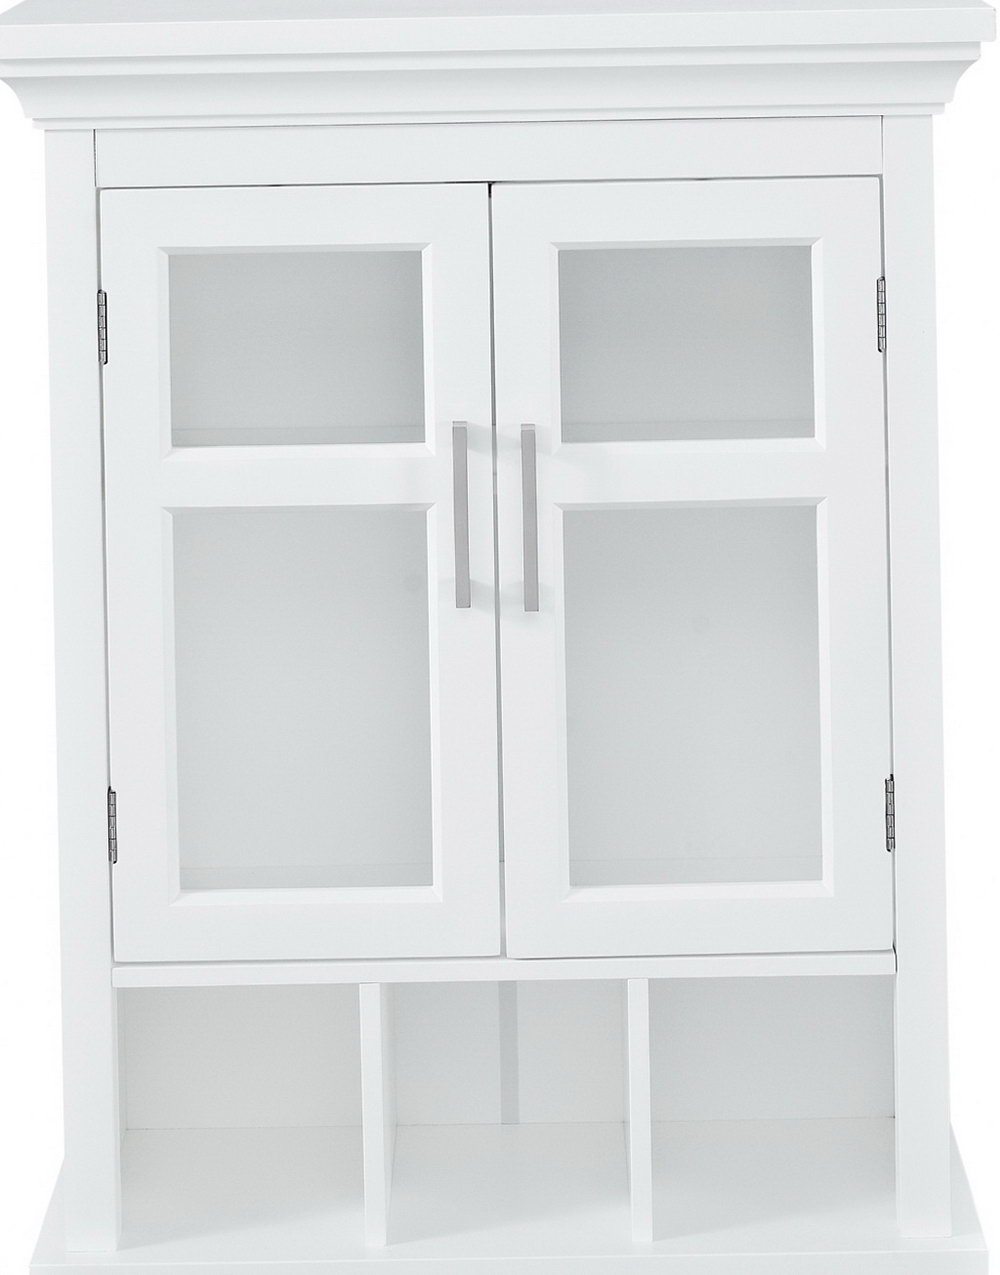 Home Depot Kitchen Wall Cabinets With Glass Doors